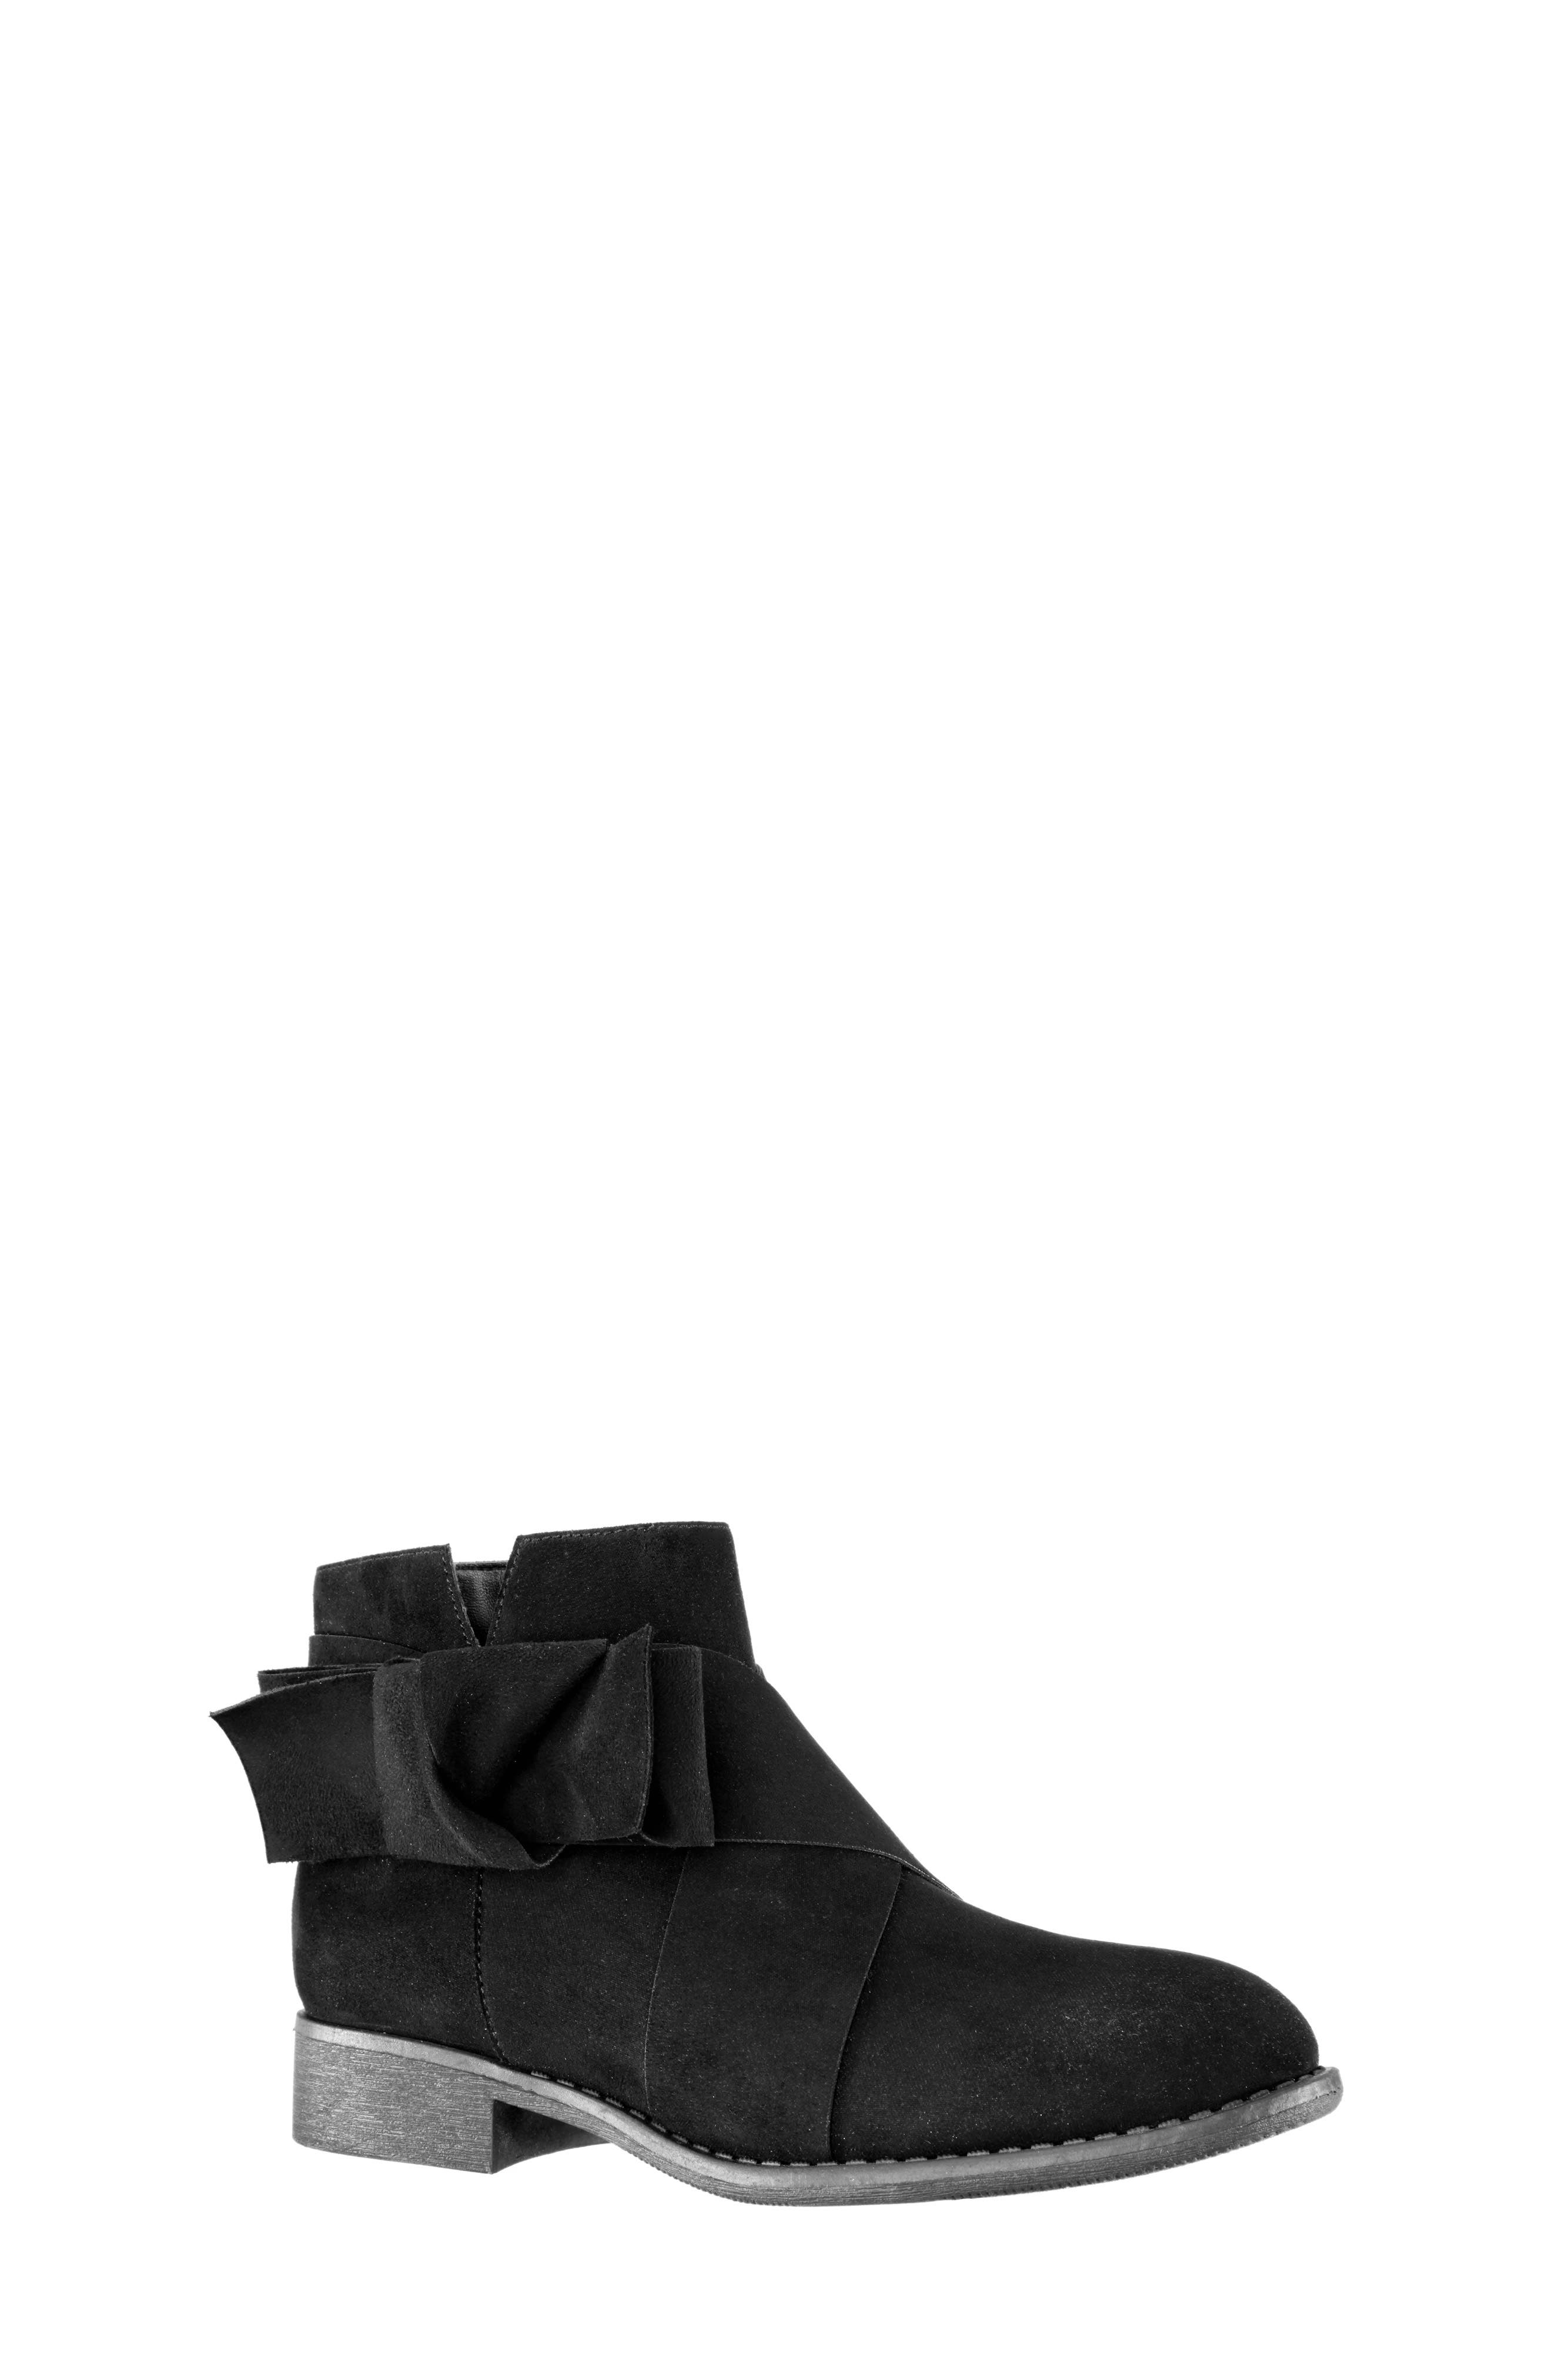 Dollee Bootie,                             Main thumbnail 1, color,                             BLACK MICRO SUEDE